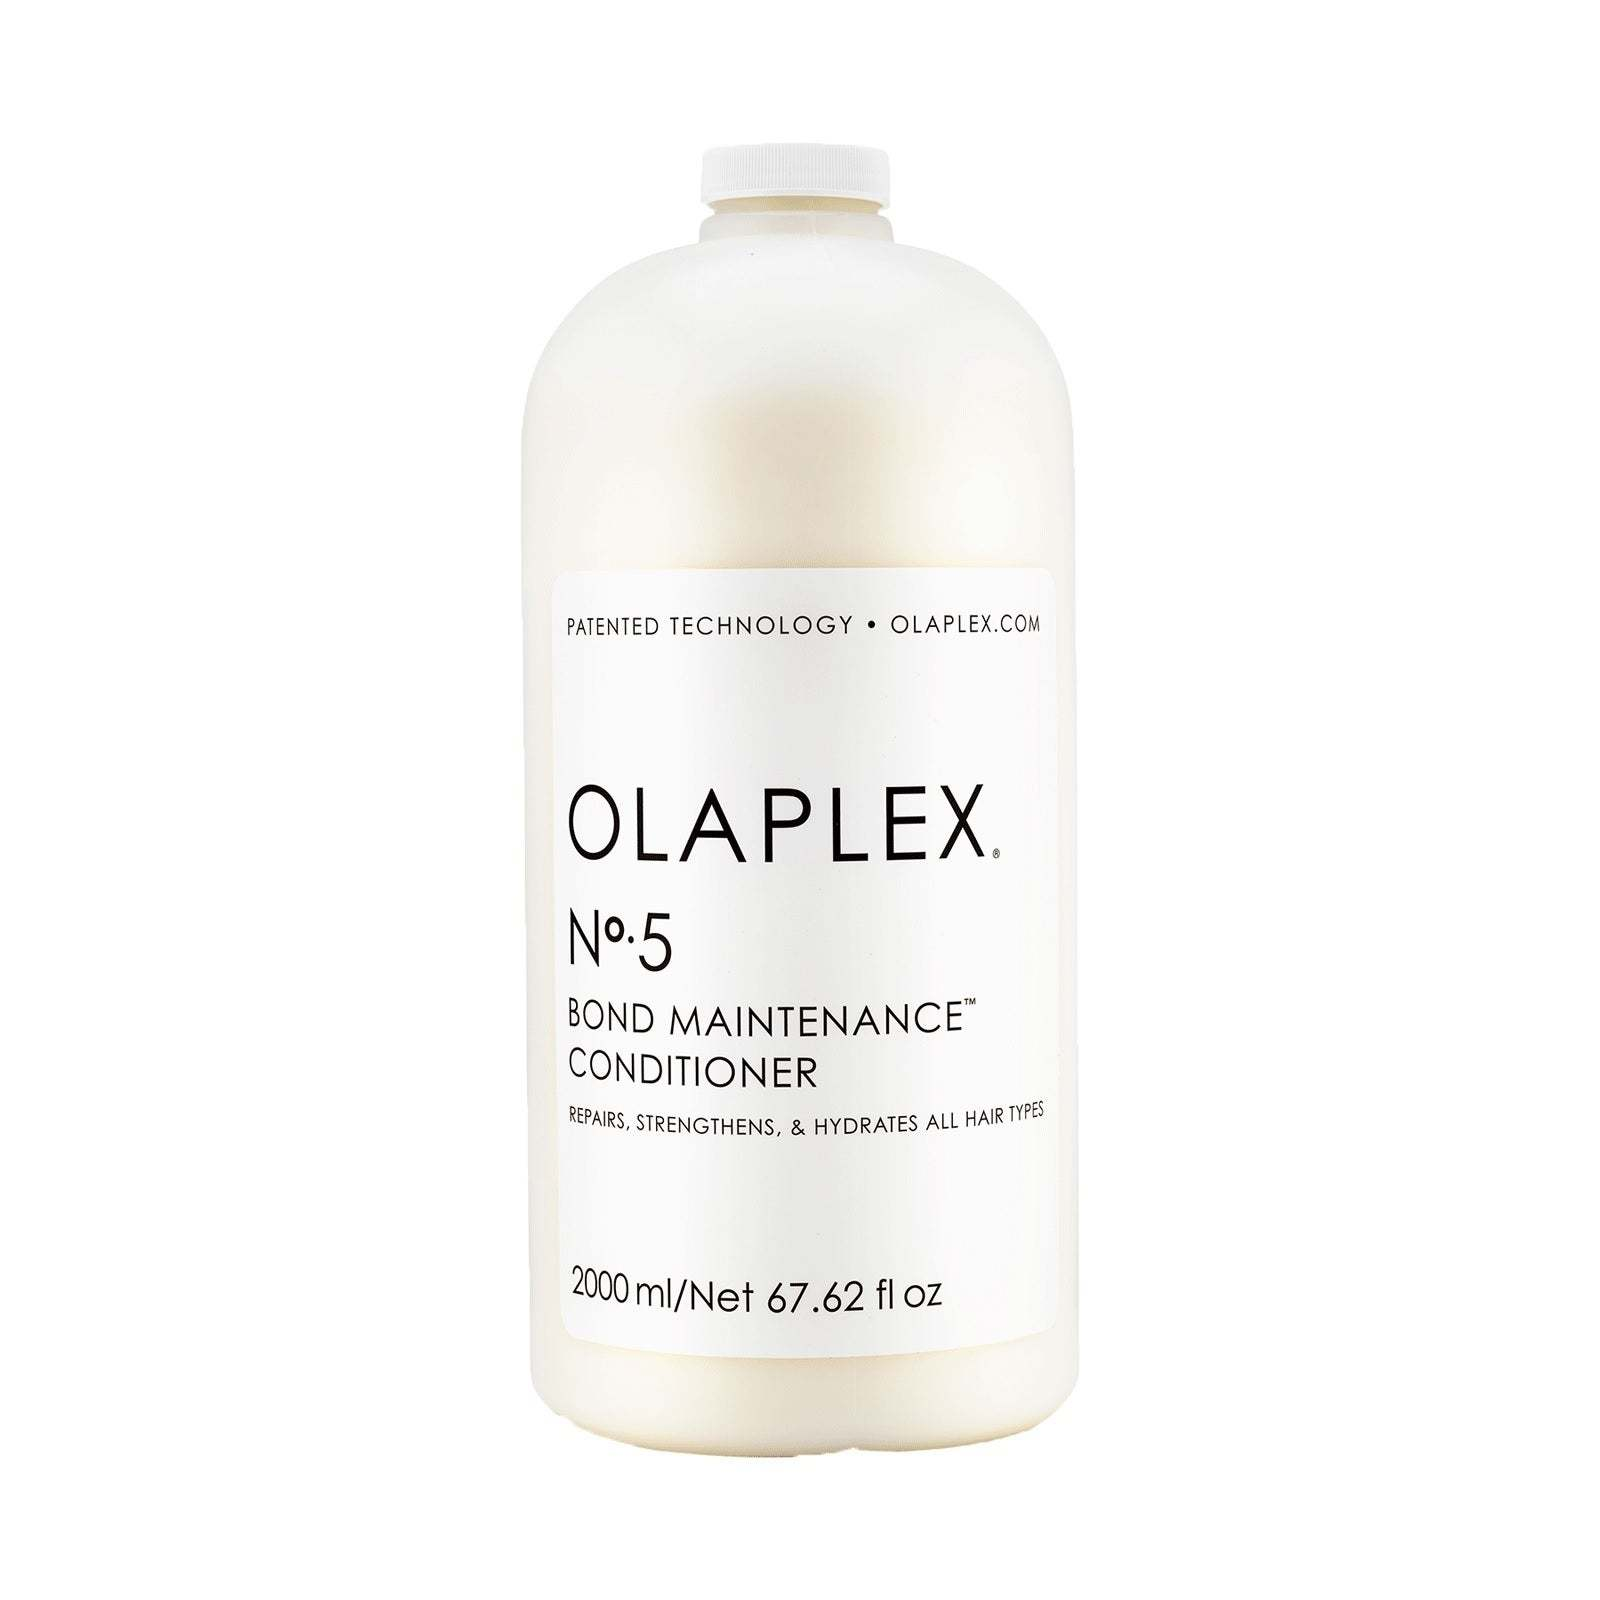 Primary image for Olaplex No 5 Bond Maintenance Conditioner 67.62oz